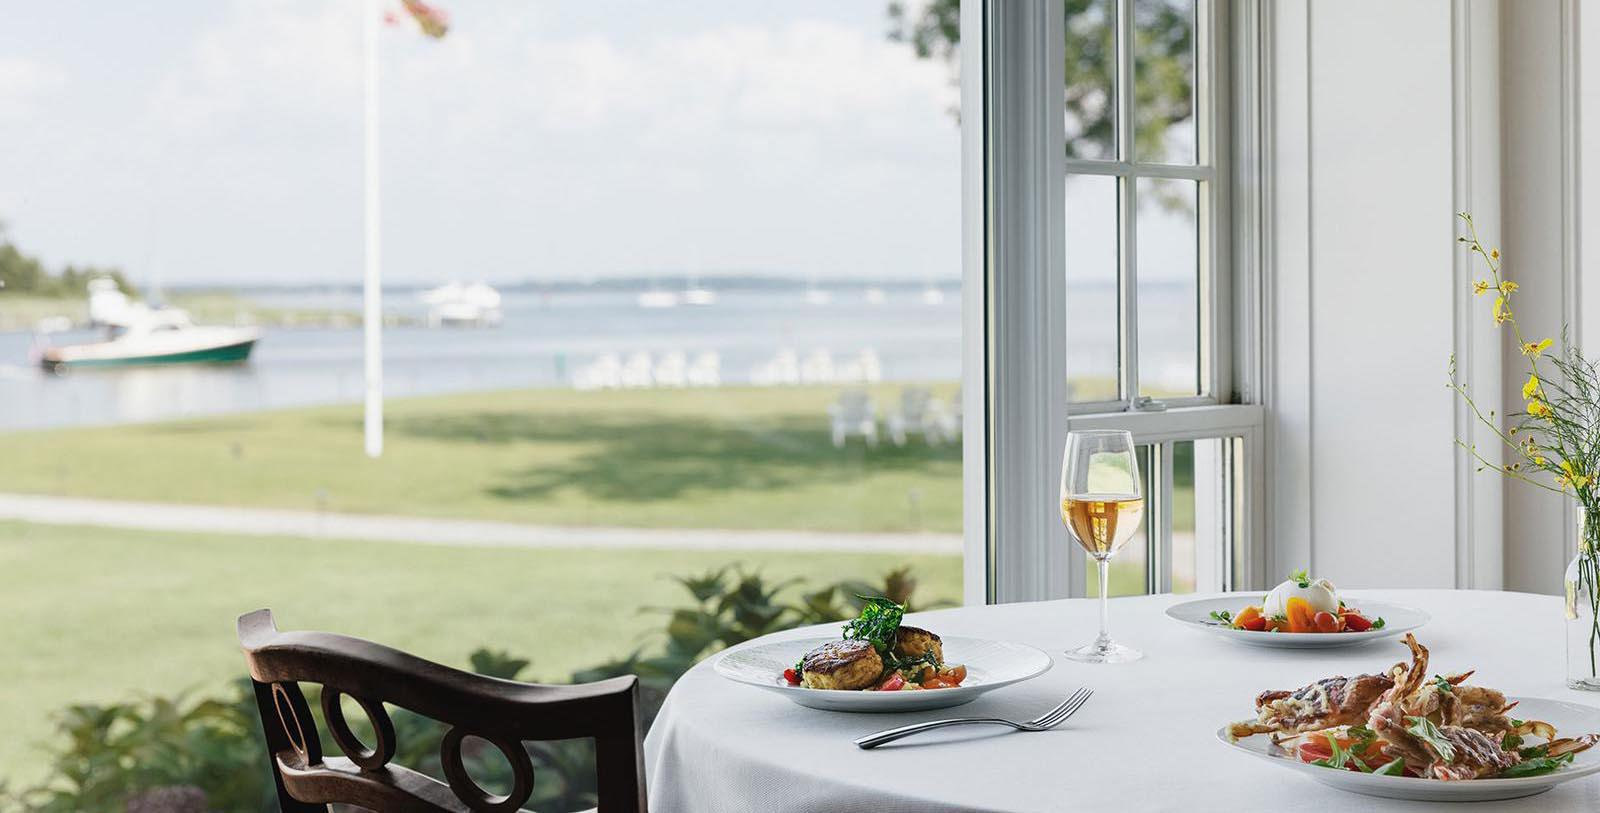 Image of Stars Restaurant, Inn at Perry Cabin in St. Michaels, Maryland, 1816, Member of Historic Hotels of America, Taste